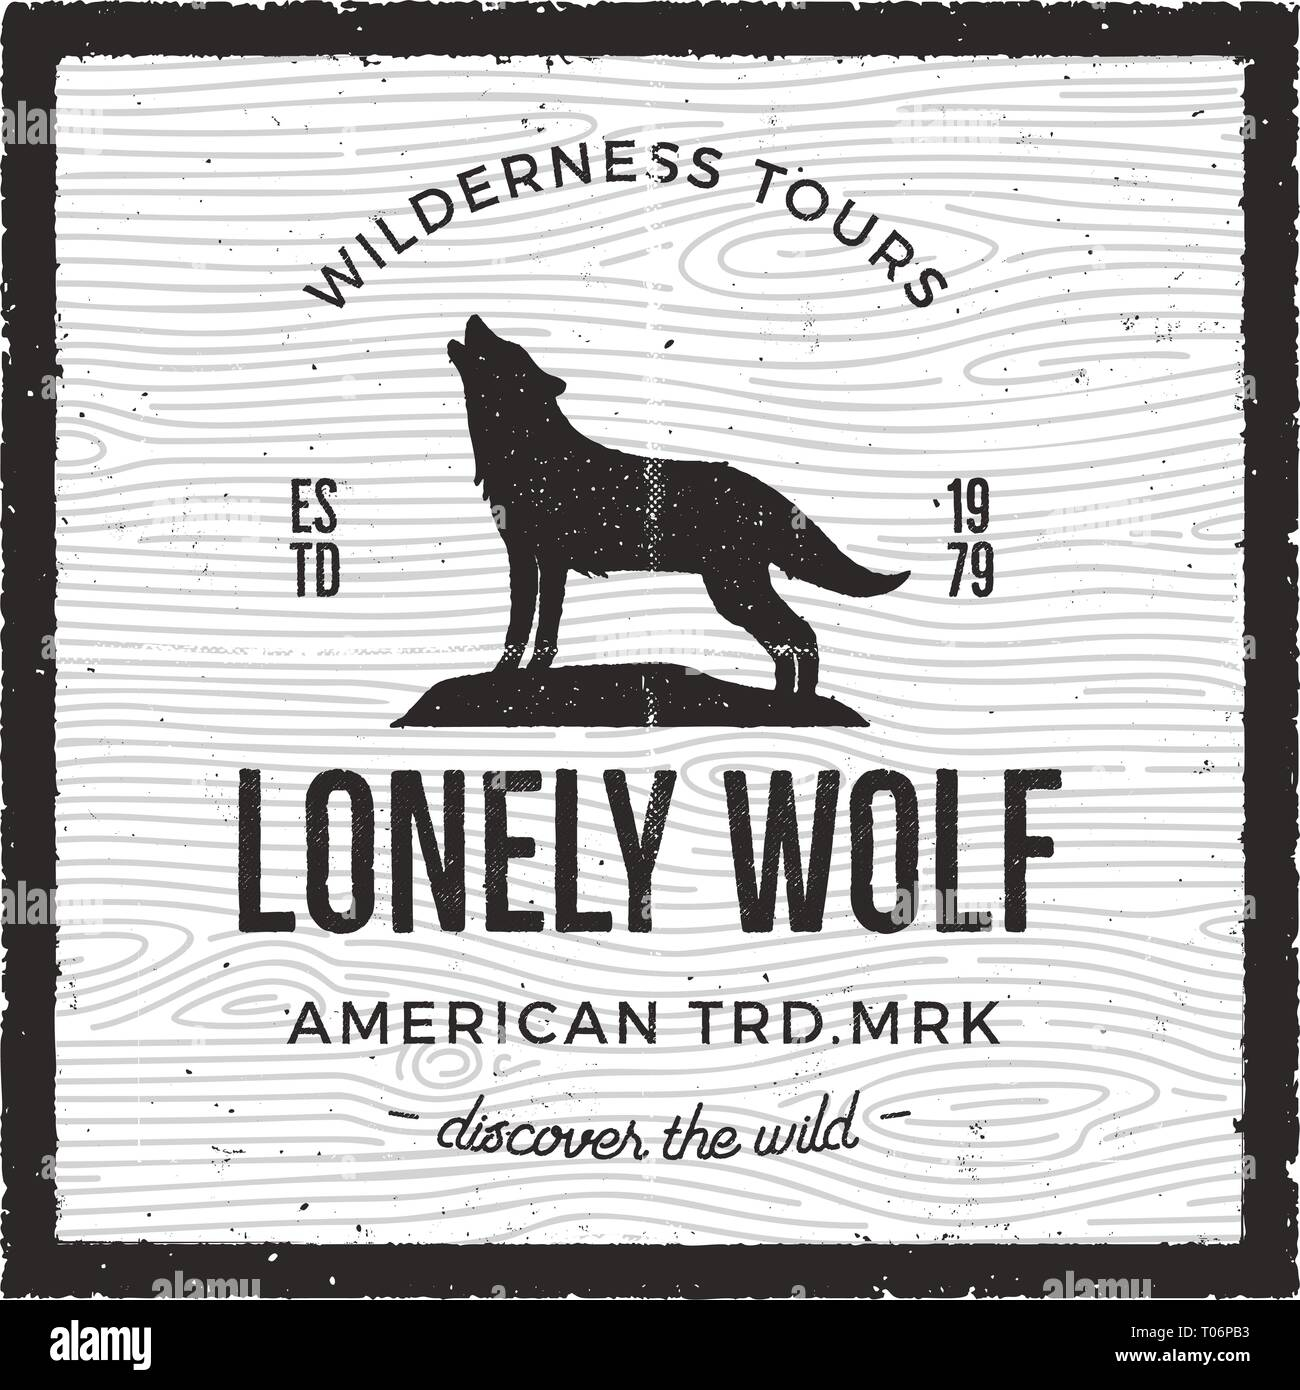 Vintage Adventure Card - Lonely wolf quote. Wilderness tours, american heritage logo. Retro hand drawn monochrome travel badge, patch. Stock vector - Stock Vector